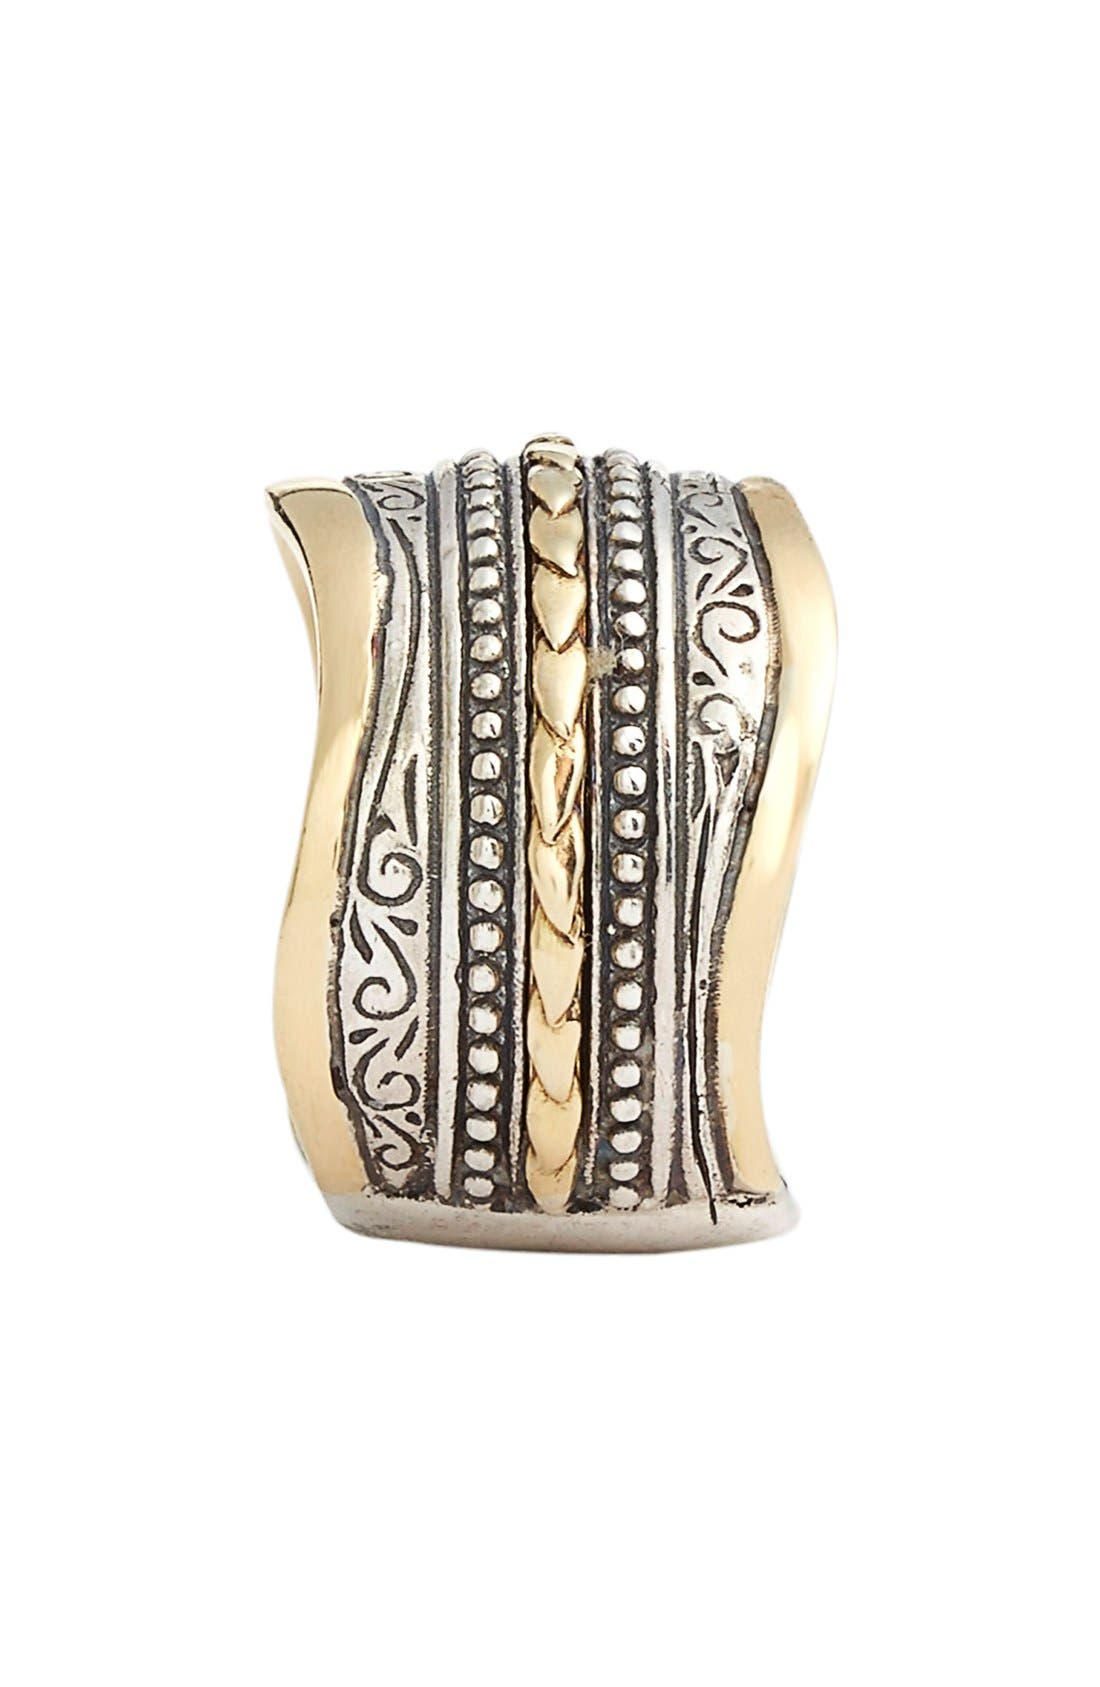 'Hebe' Wavy Etched Band Ring,                             Alternate thumbnail 2, color,                             Silver/ Gold